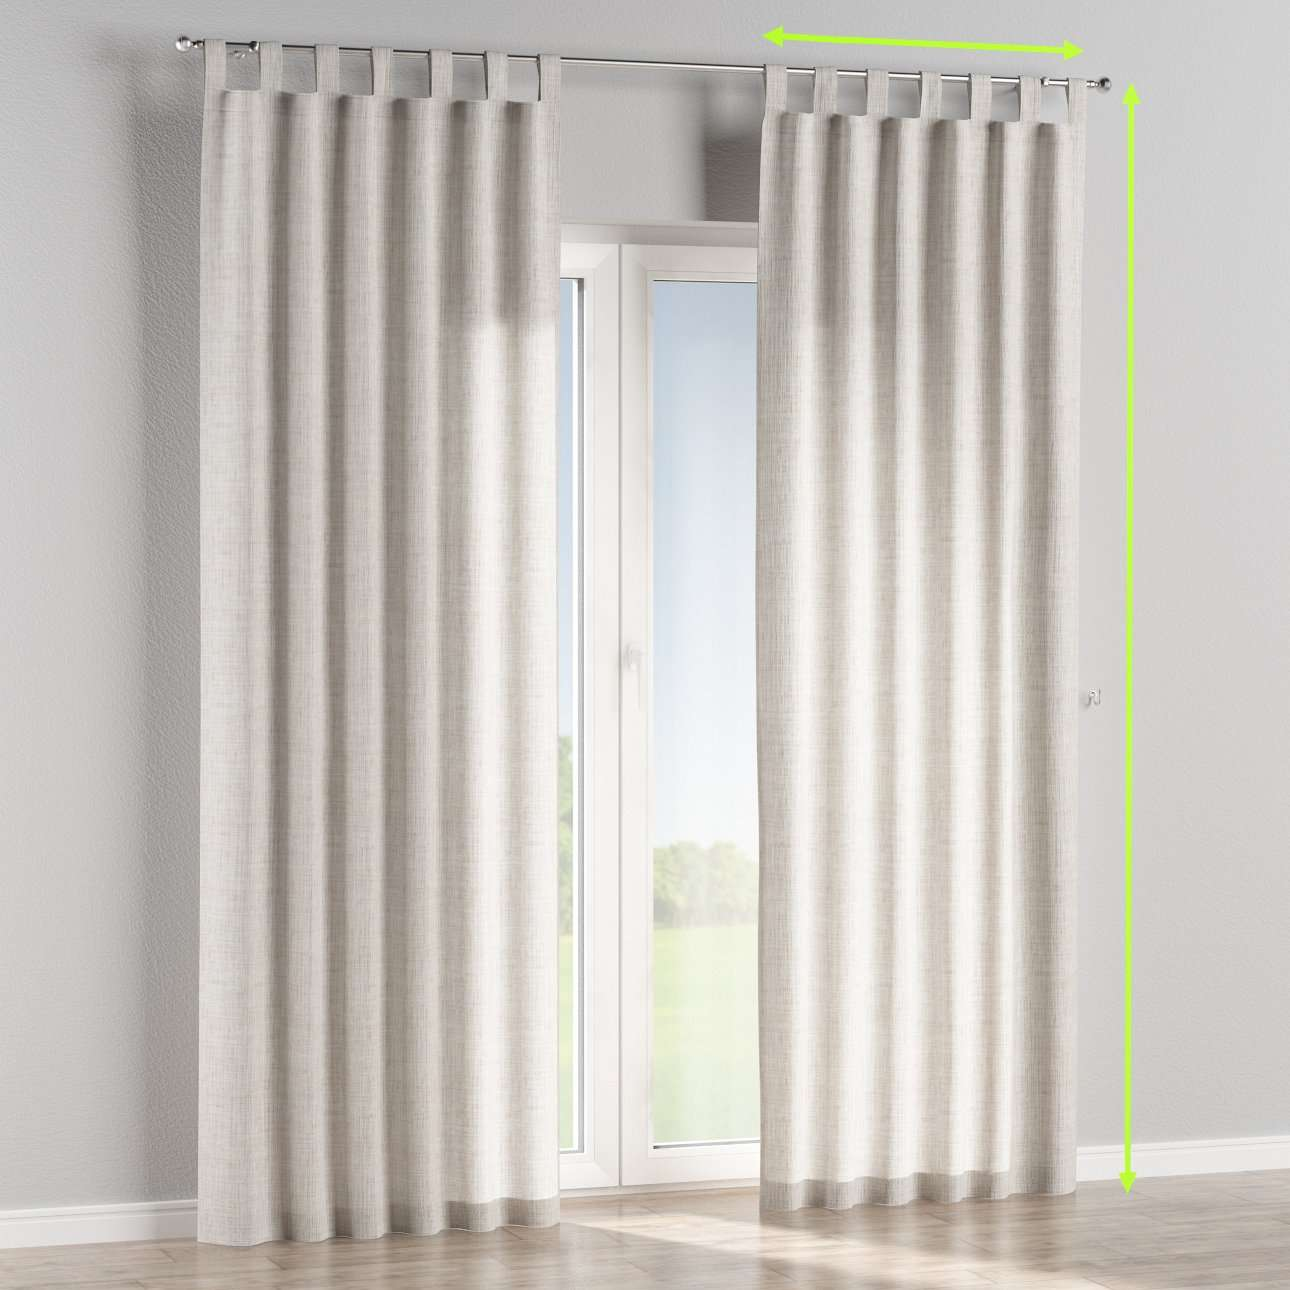 Tab top curtains in collection Aquarelle, fabric: 140-75